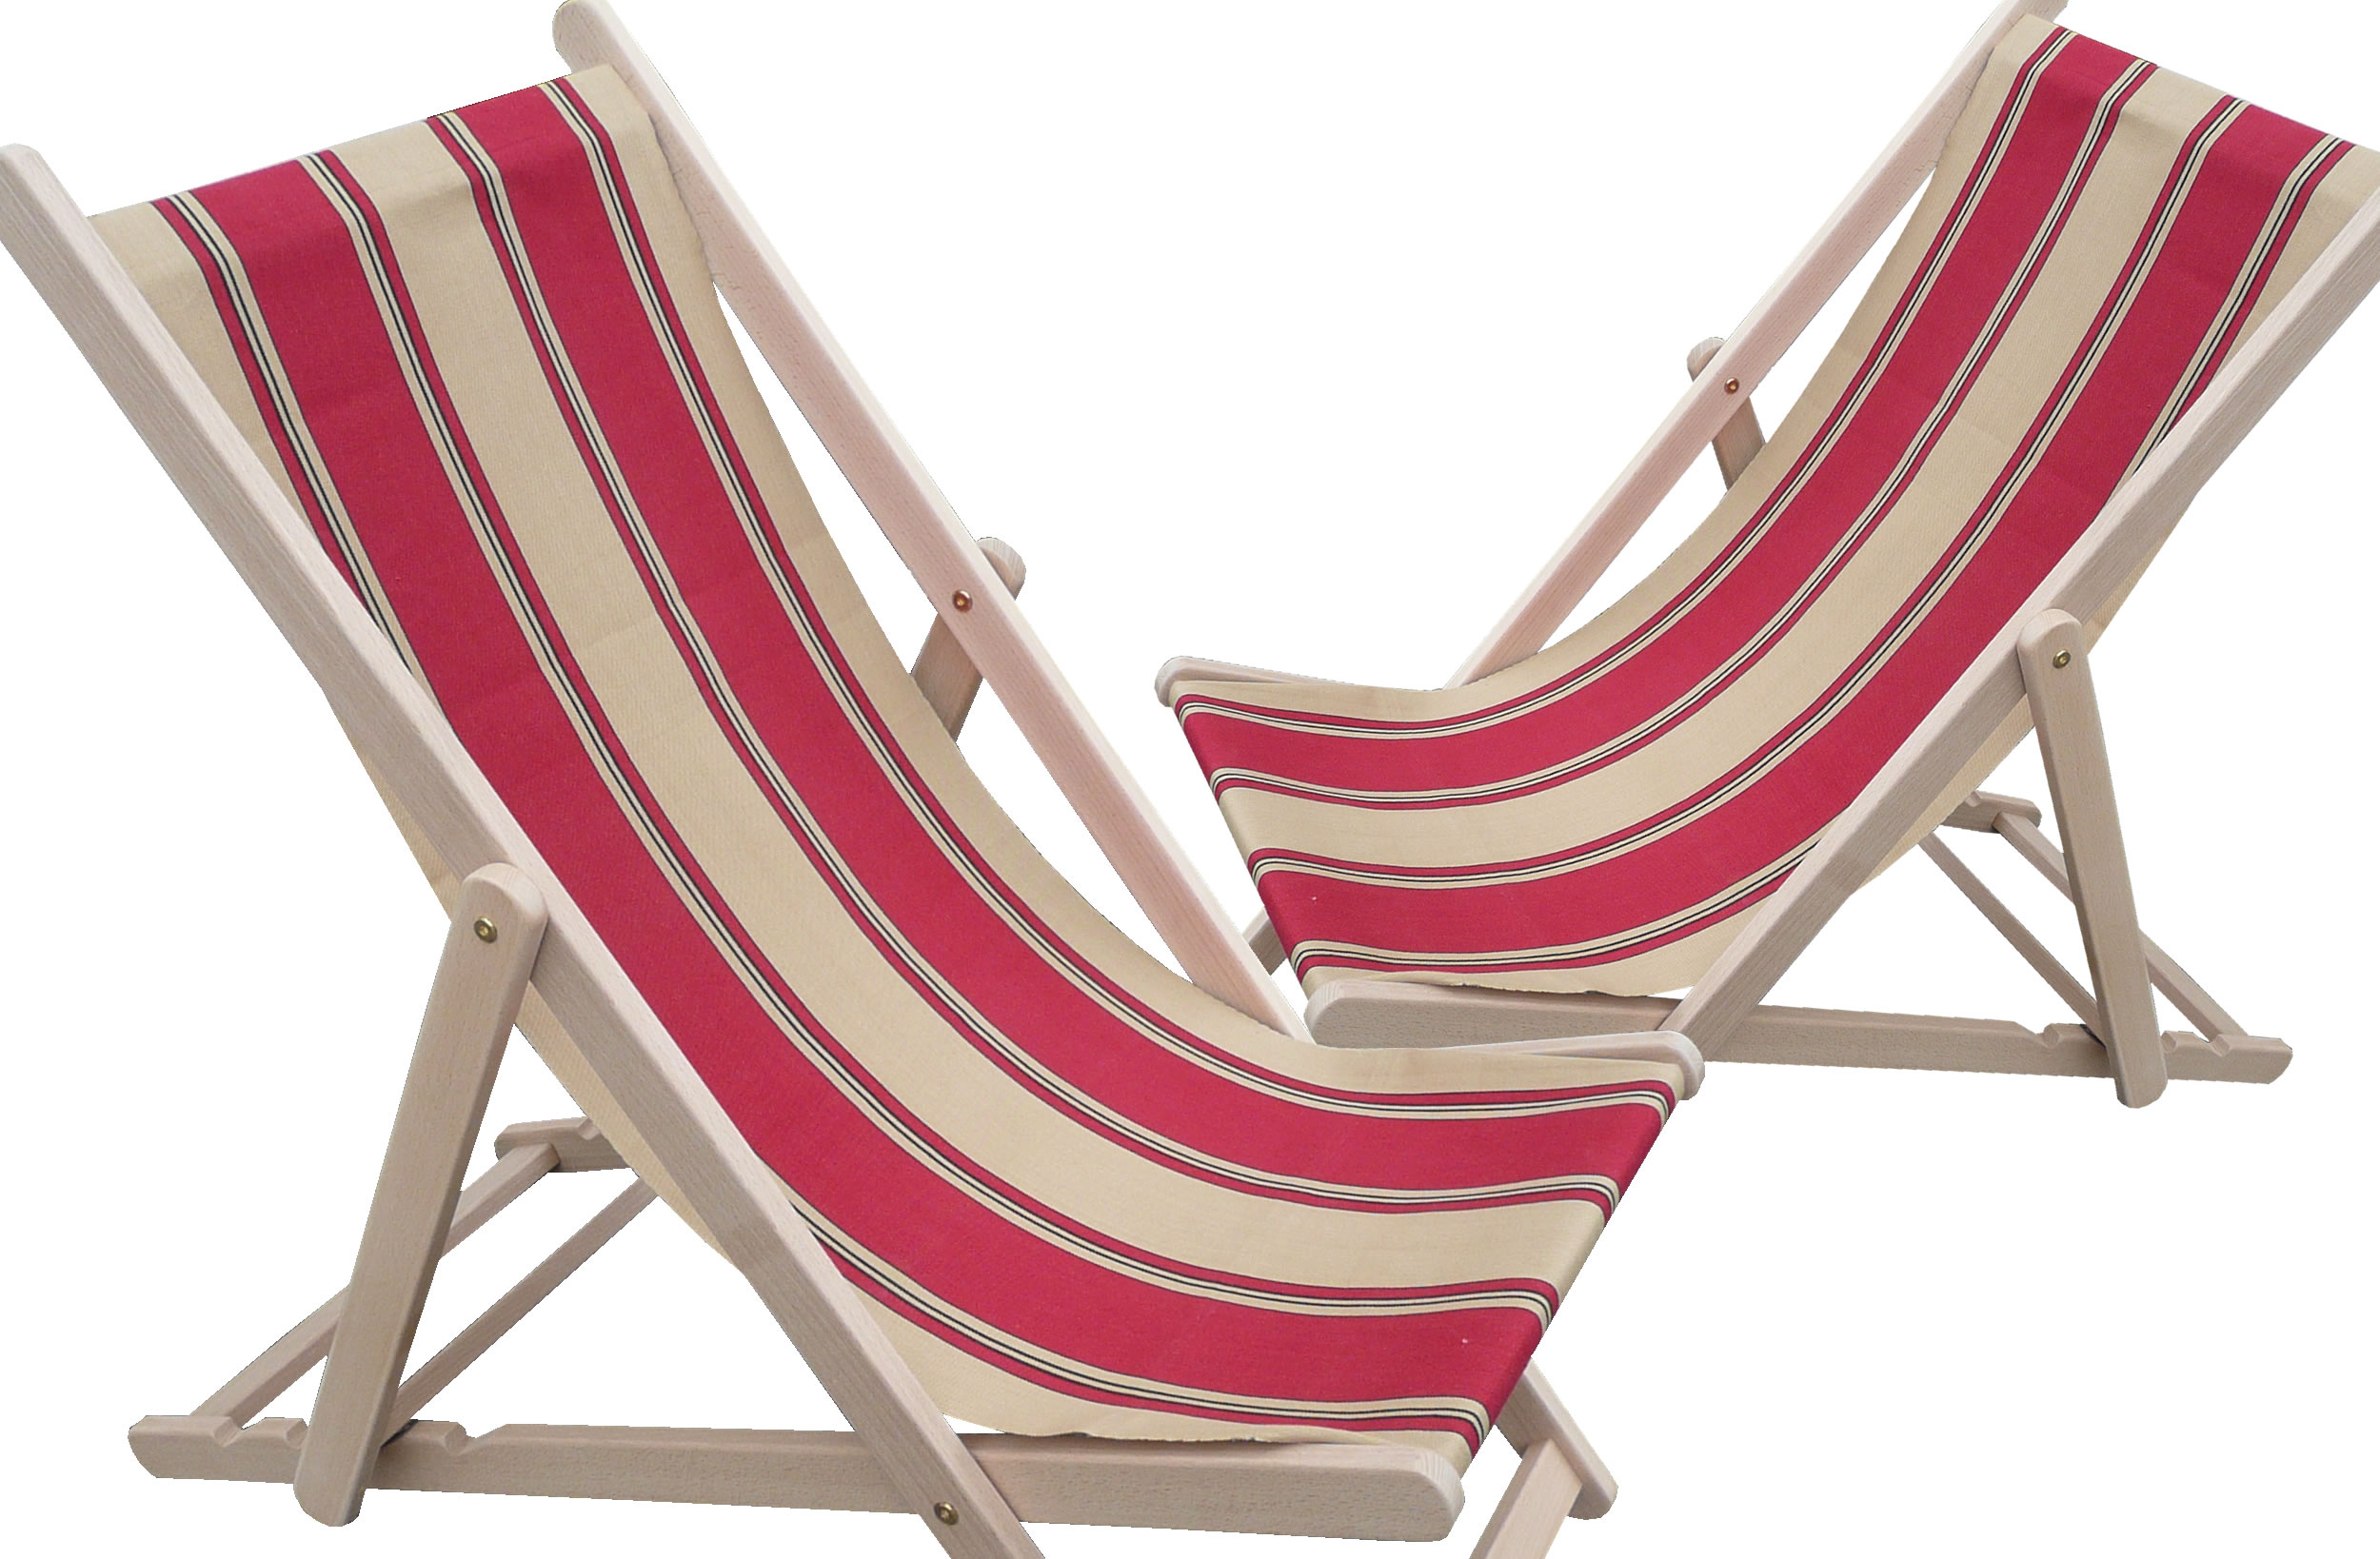 Red Deckchairs | Folding Wooden Deck Chairs - Steeplechase Stripes